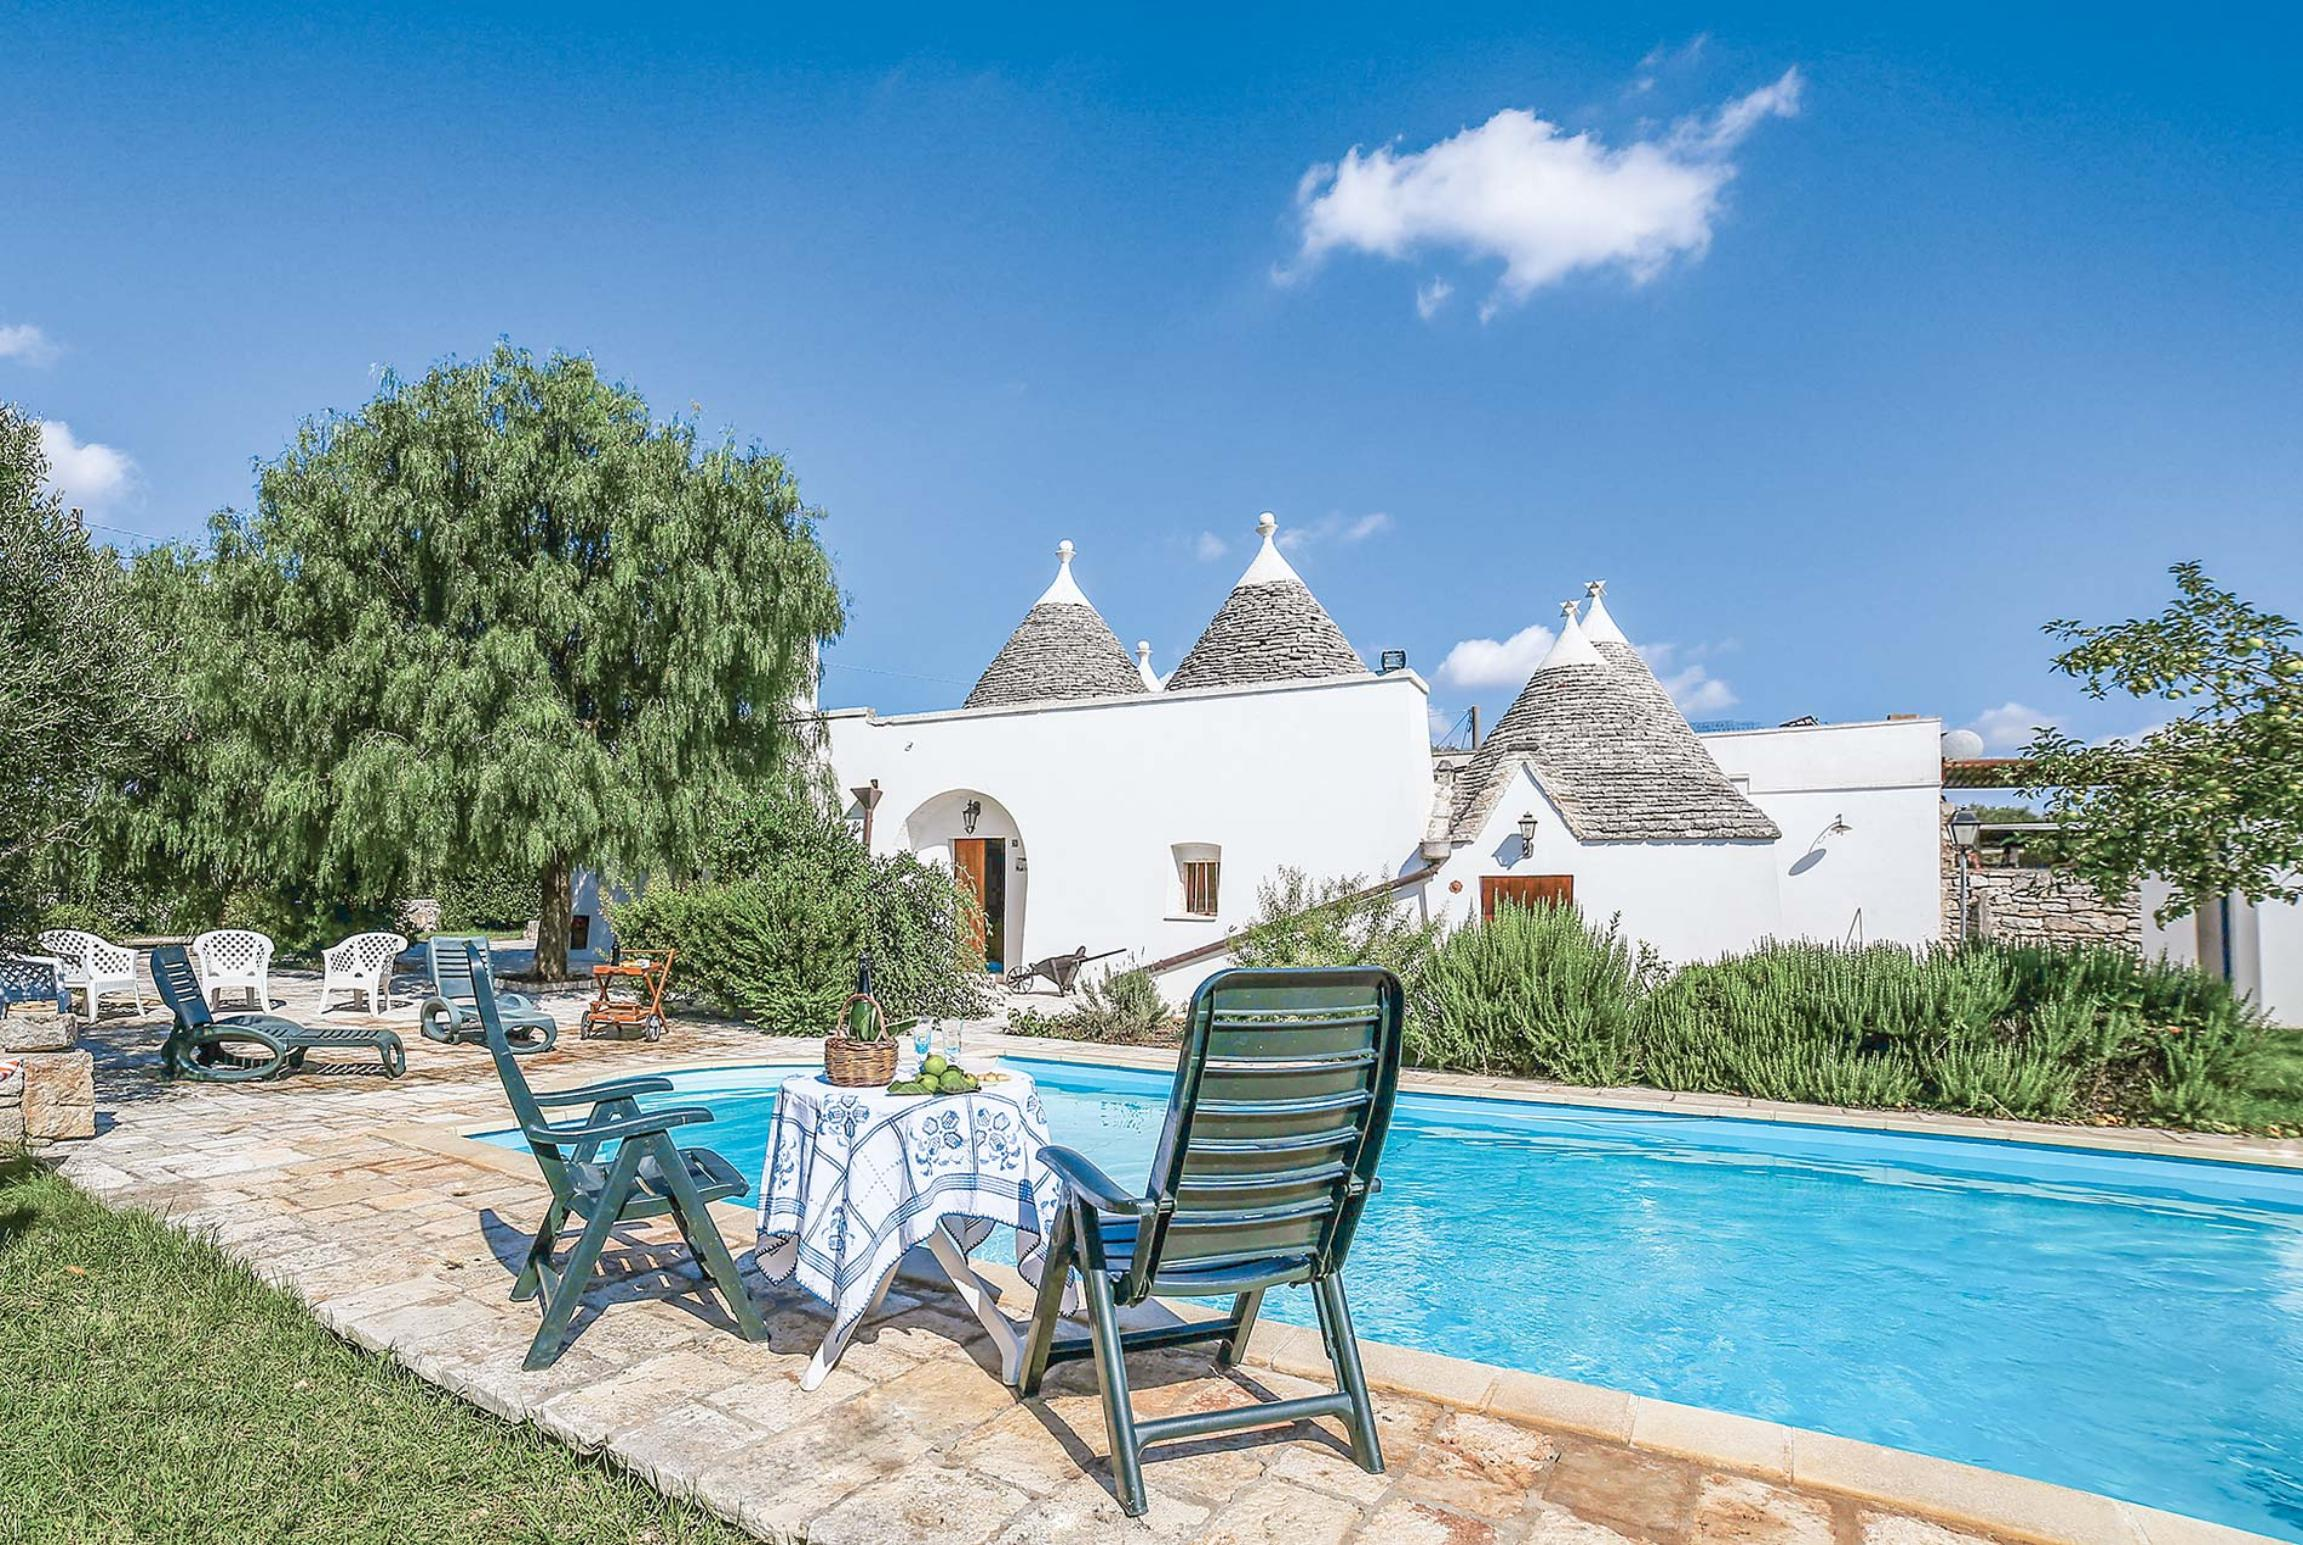 Photo of Trullo Fico villa